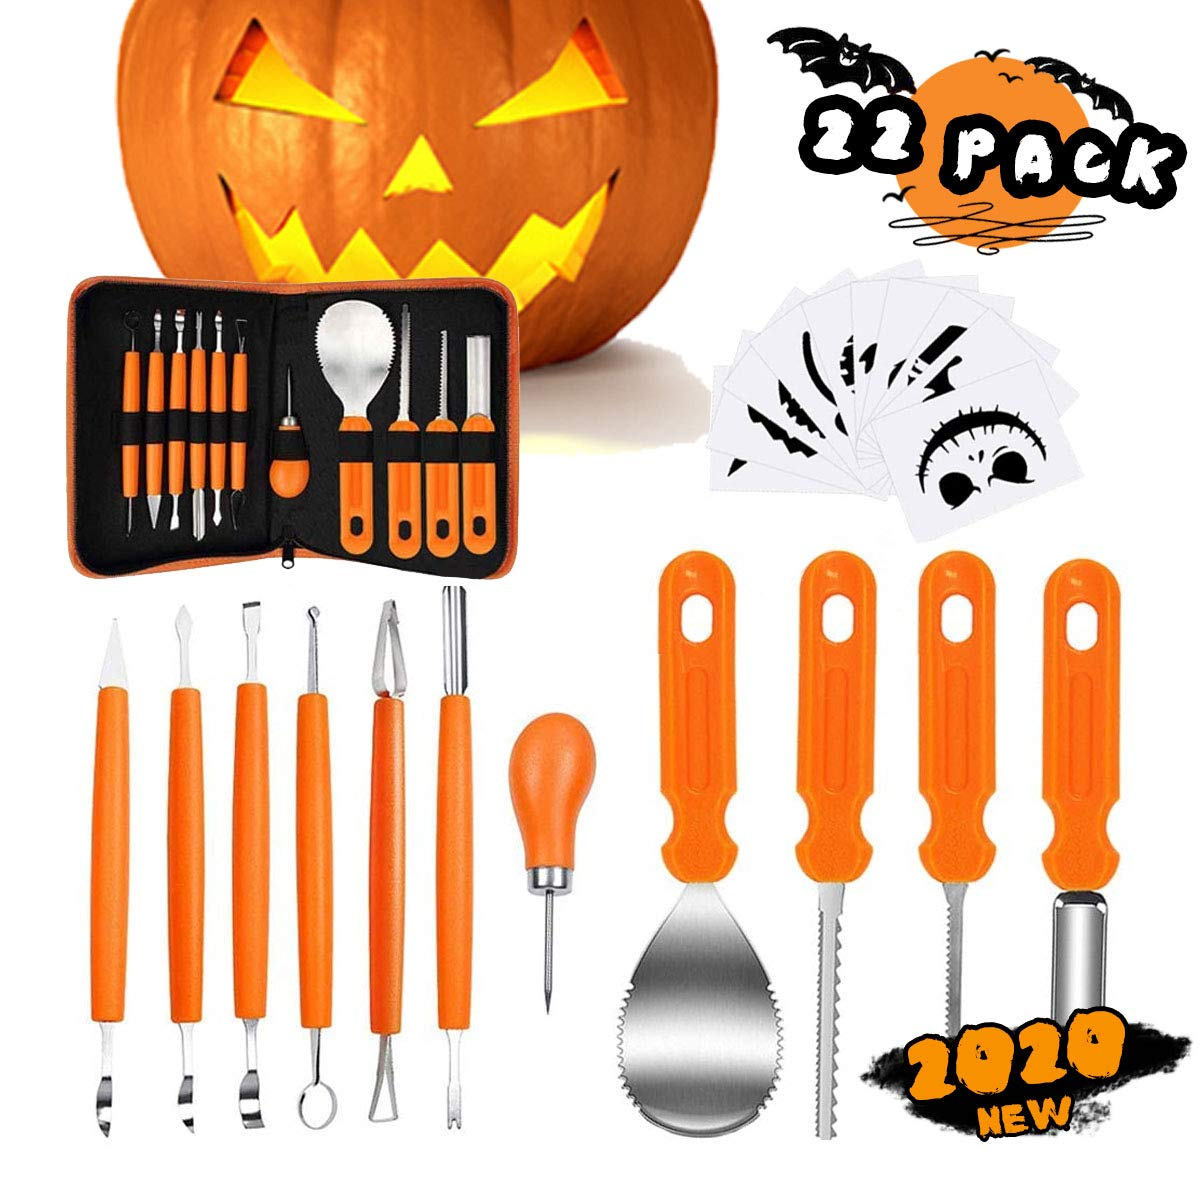 Halloween Pumpkin Accessories.Buy Hohit Halloween Pumpkin Carving Kit 11 Pack Tools Accessories Stainless Steel Professional Carving Knife Carve Sculpt Jack O Lanterns Halloween Decorations Diy With A Storage Carrying Case Online At Low Prices In India